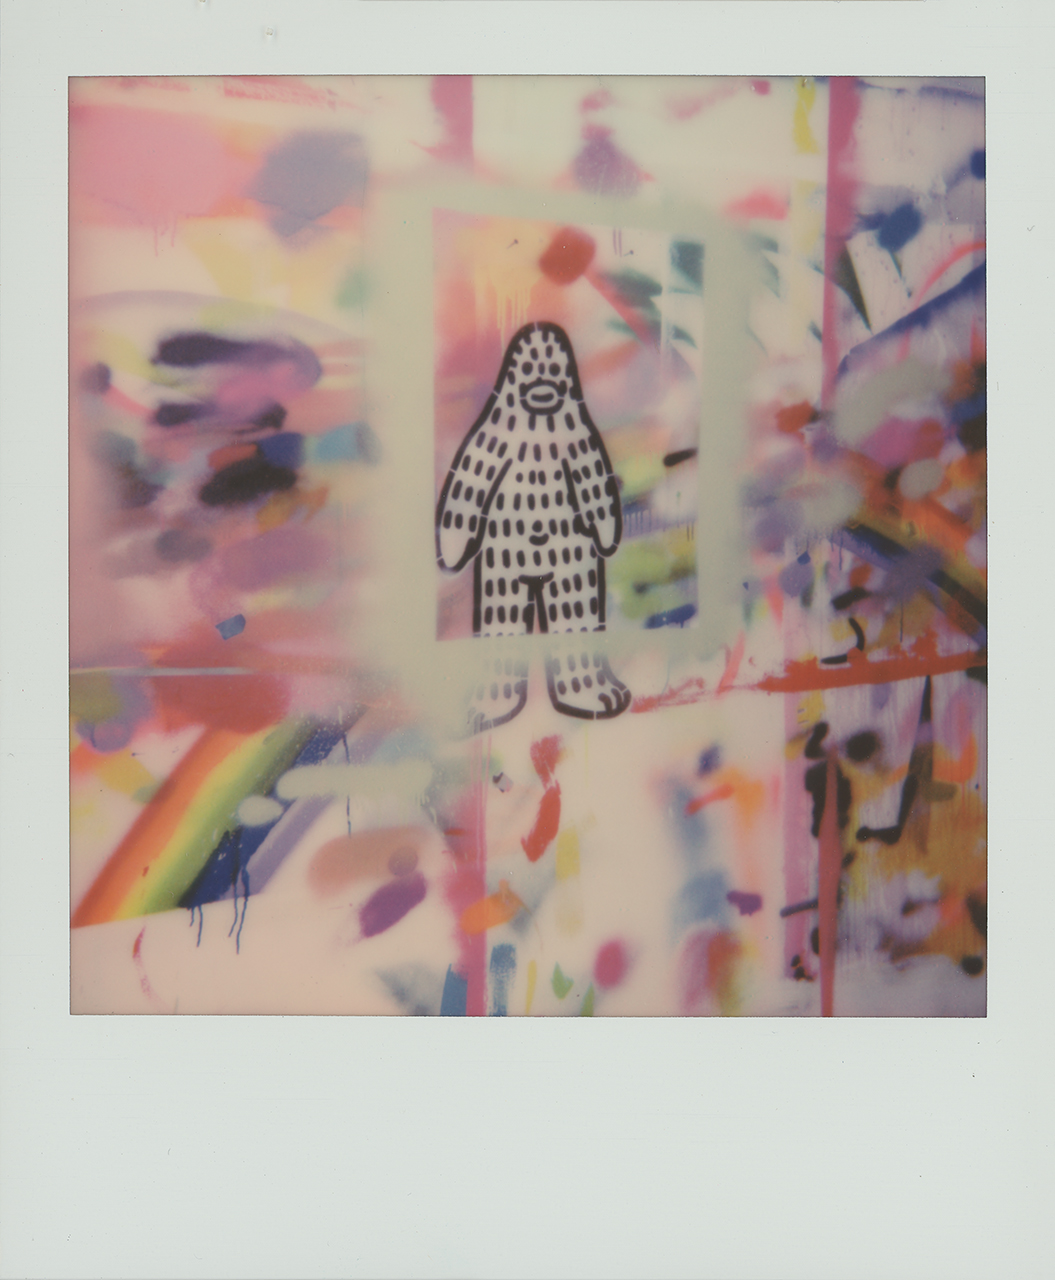 Frank Ape on Polaroid 600 film